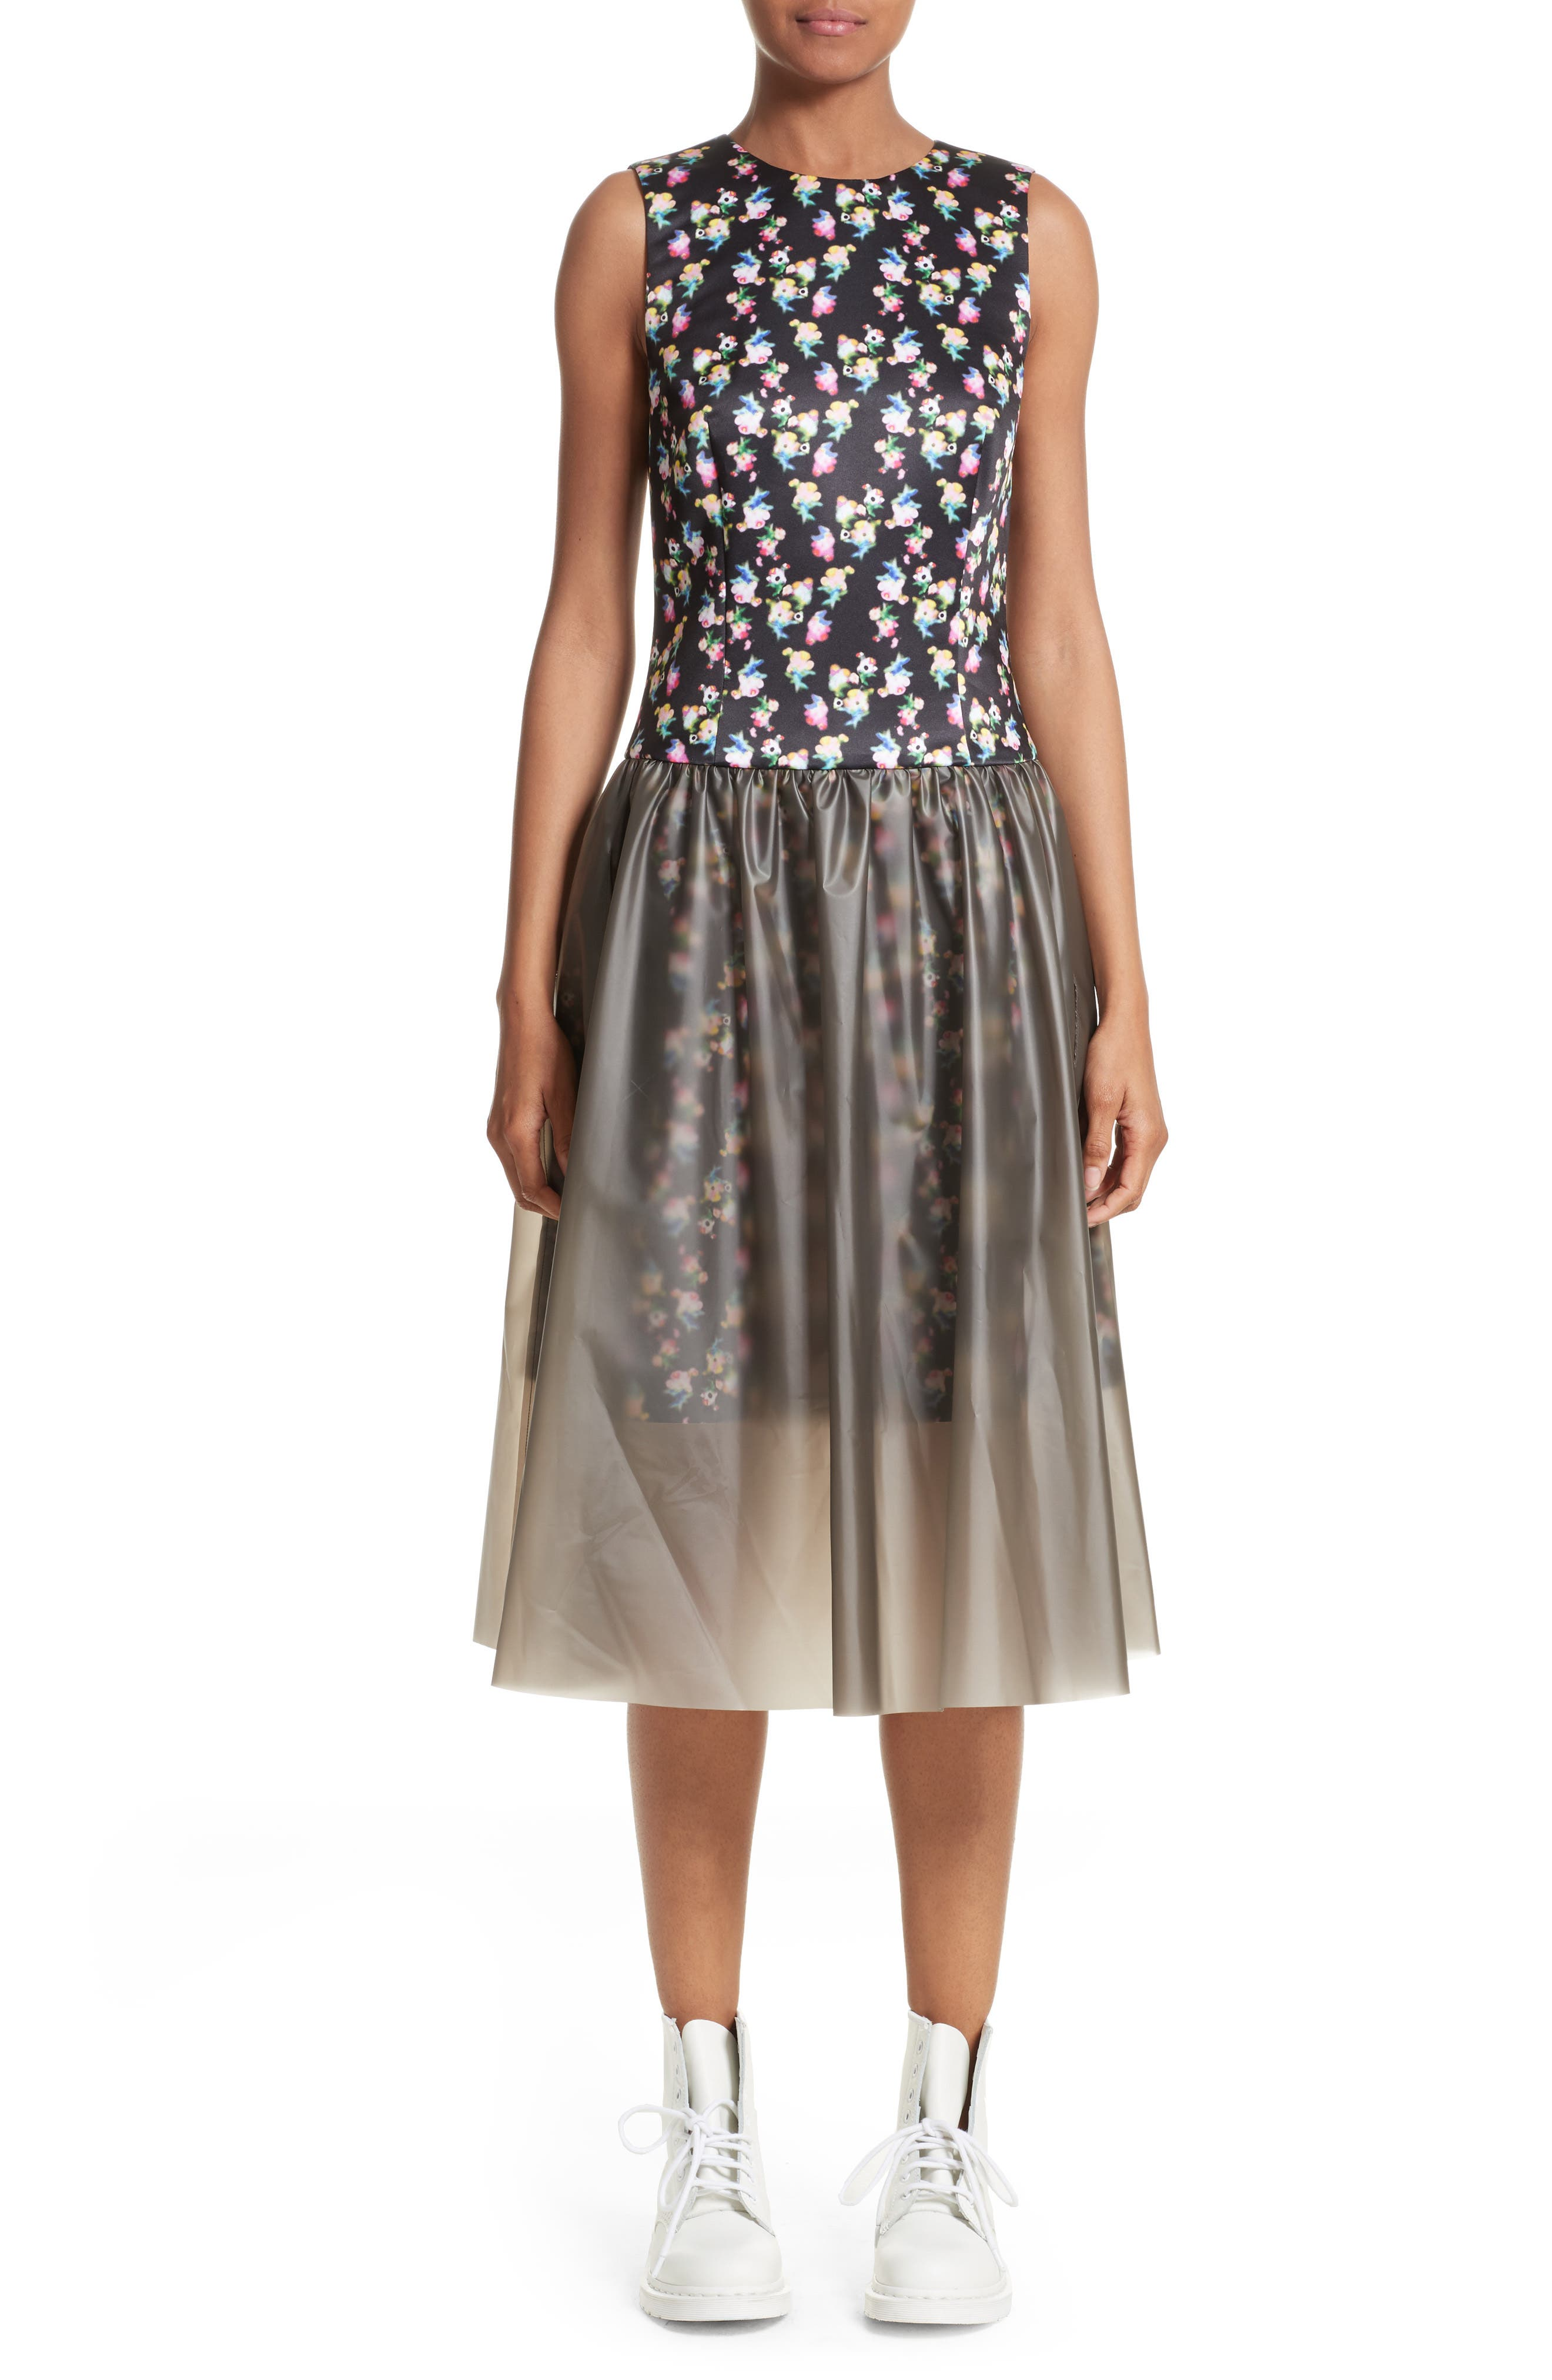 Floral Print Fit & Flare Dress with Vinyl Skirt,                         Main,                         color, Blurred Flowers On Black